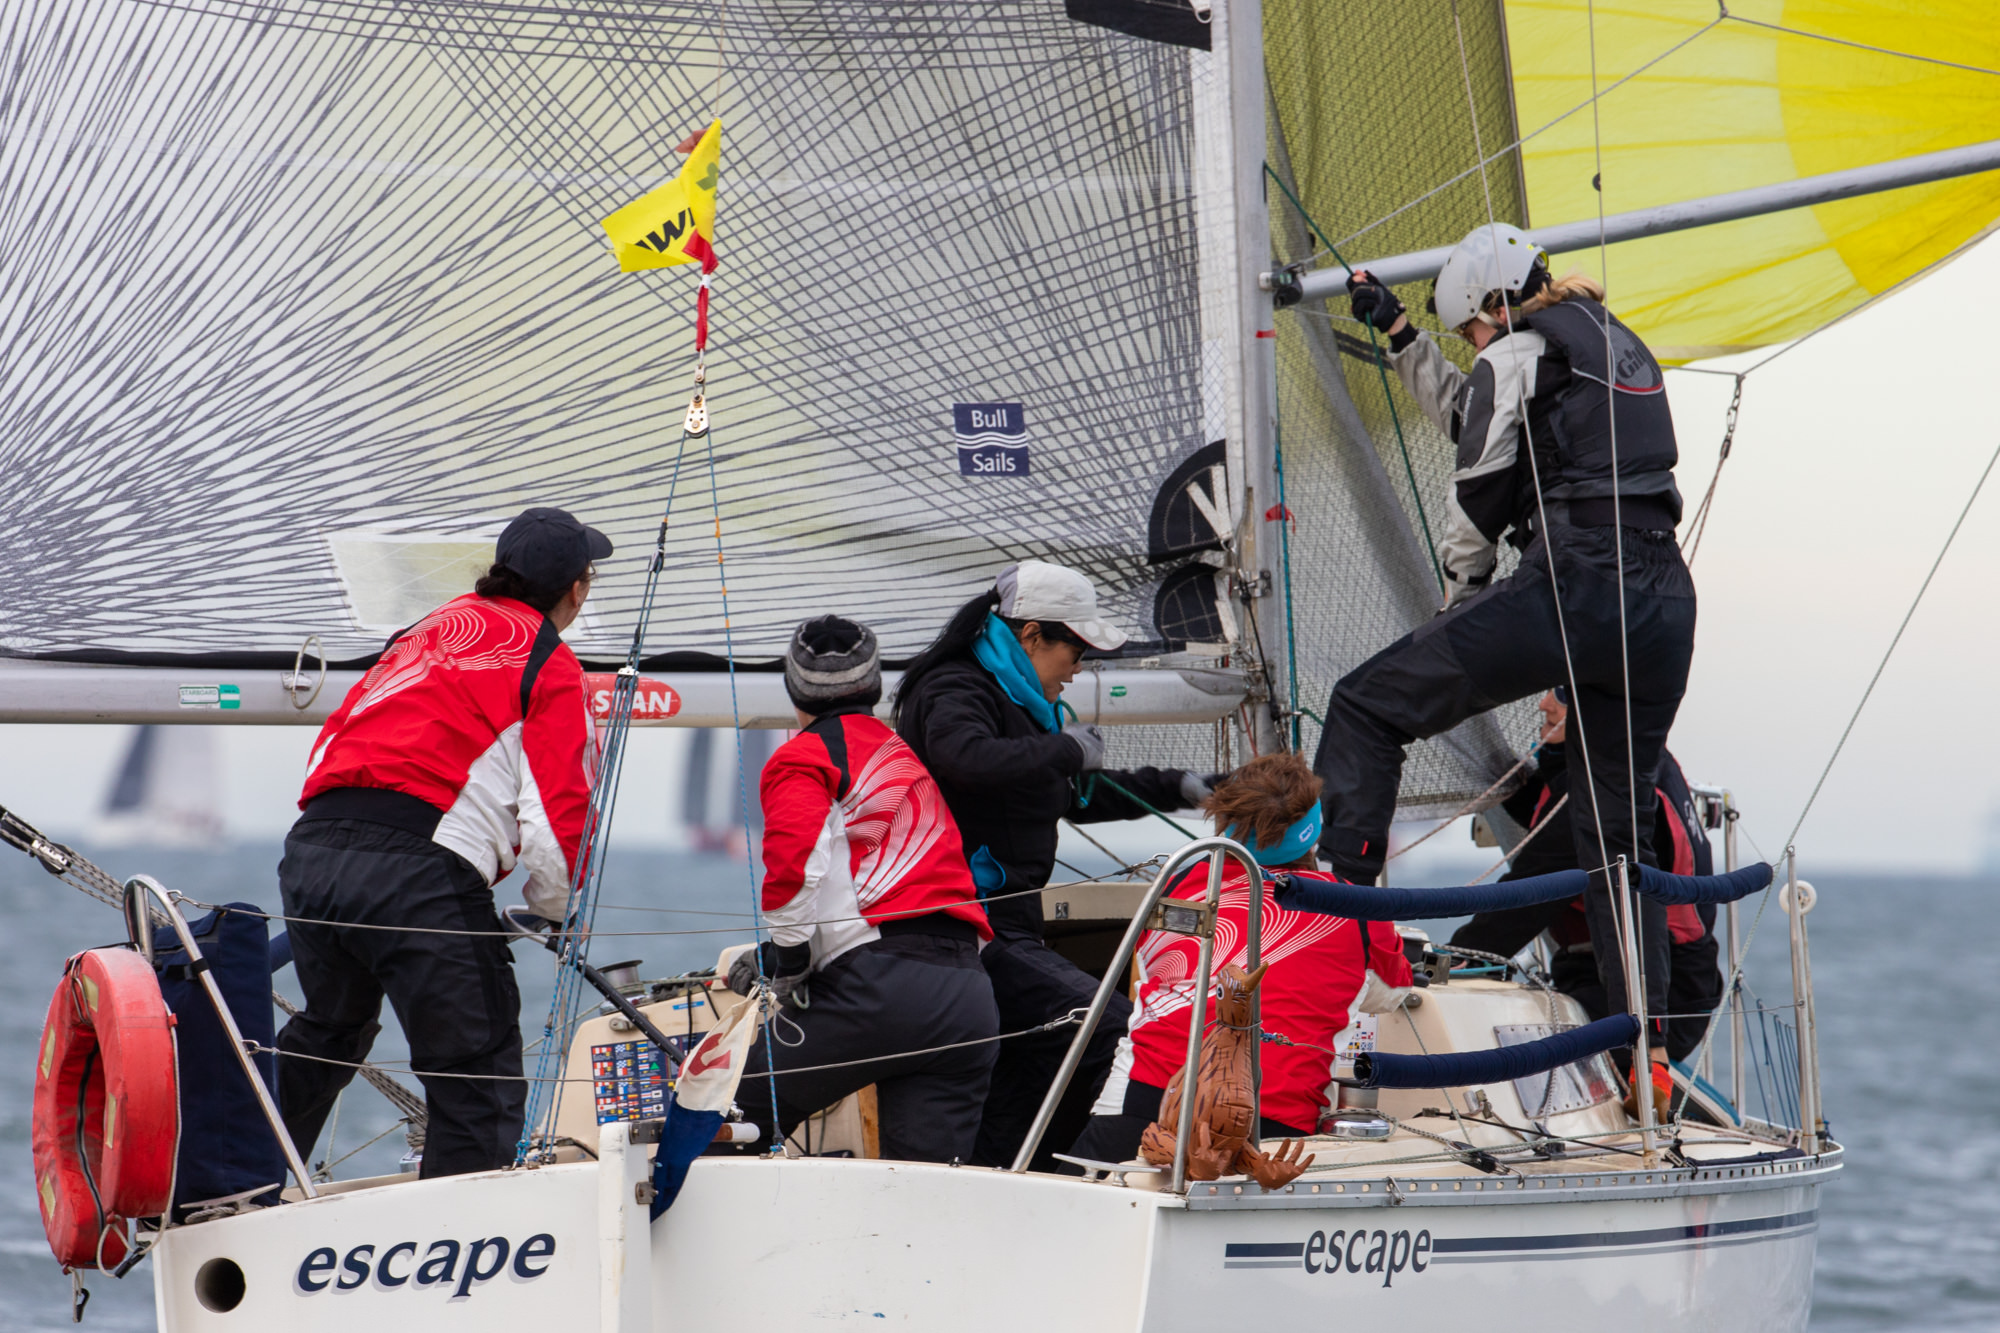 Competition ramps up with one day remaining at Australian Women's Keelboat Regatta